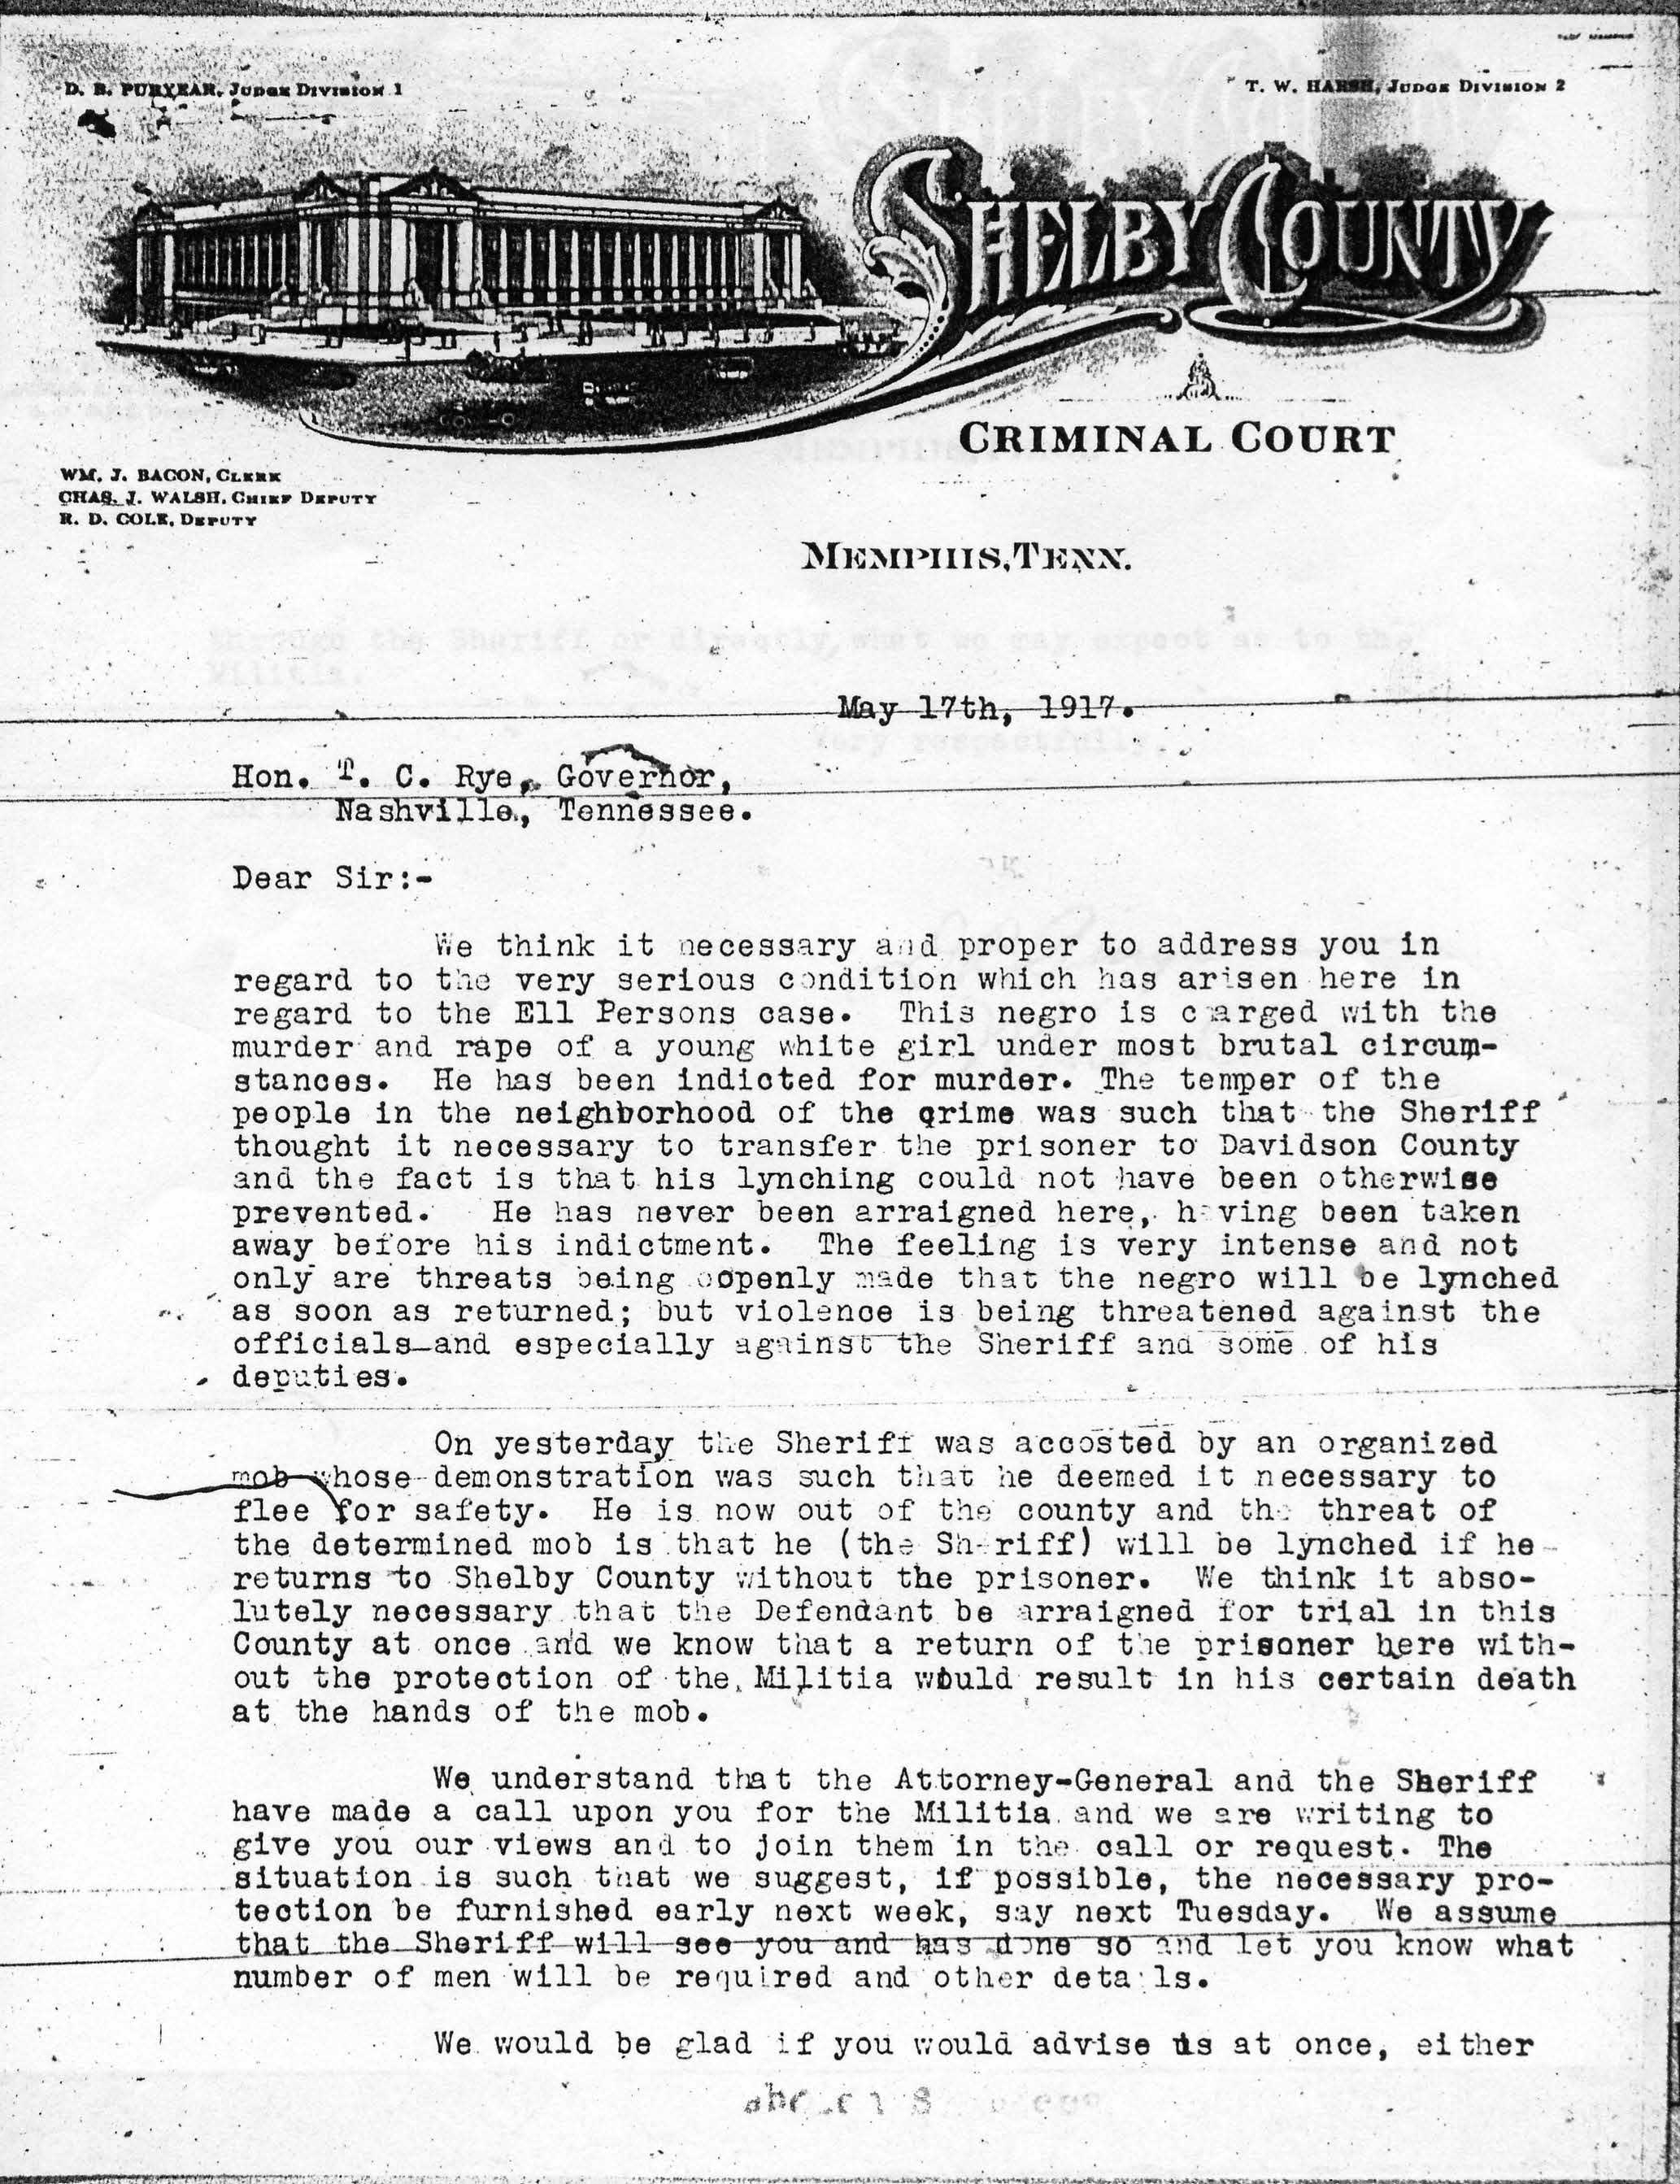 Request for Troops, 5/17/1917